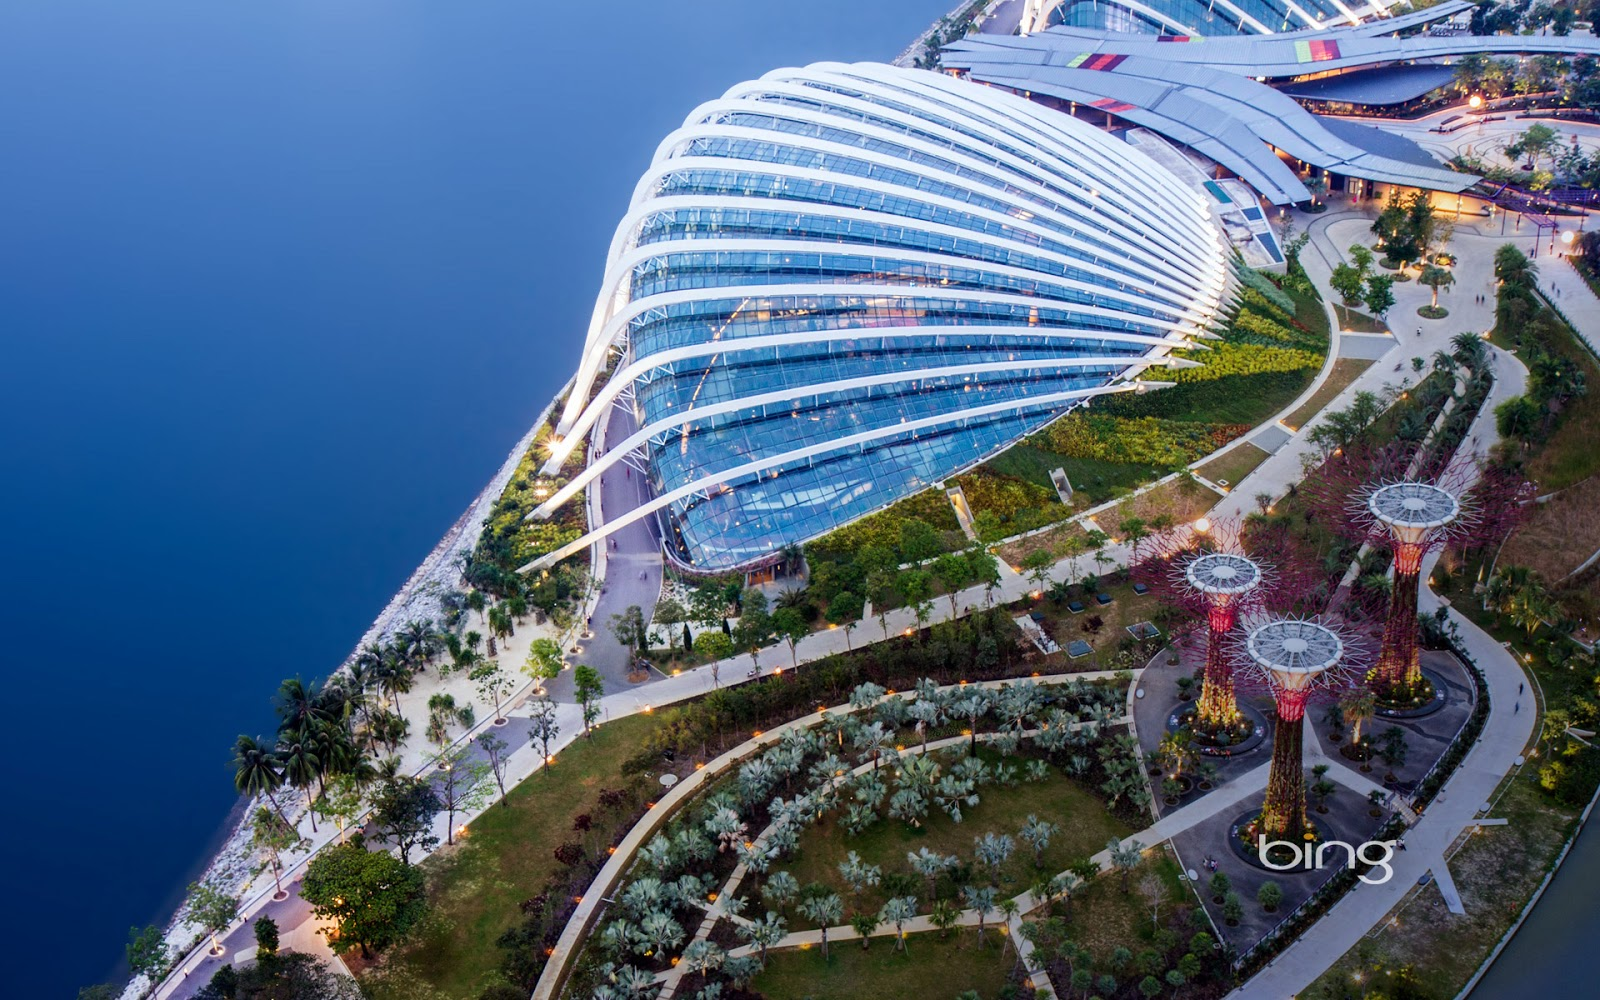 Aerial view of Gardens by the Bay and the Supertrees Grove, Singapore